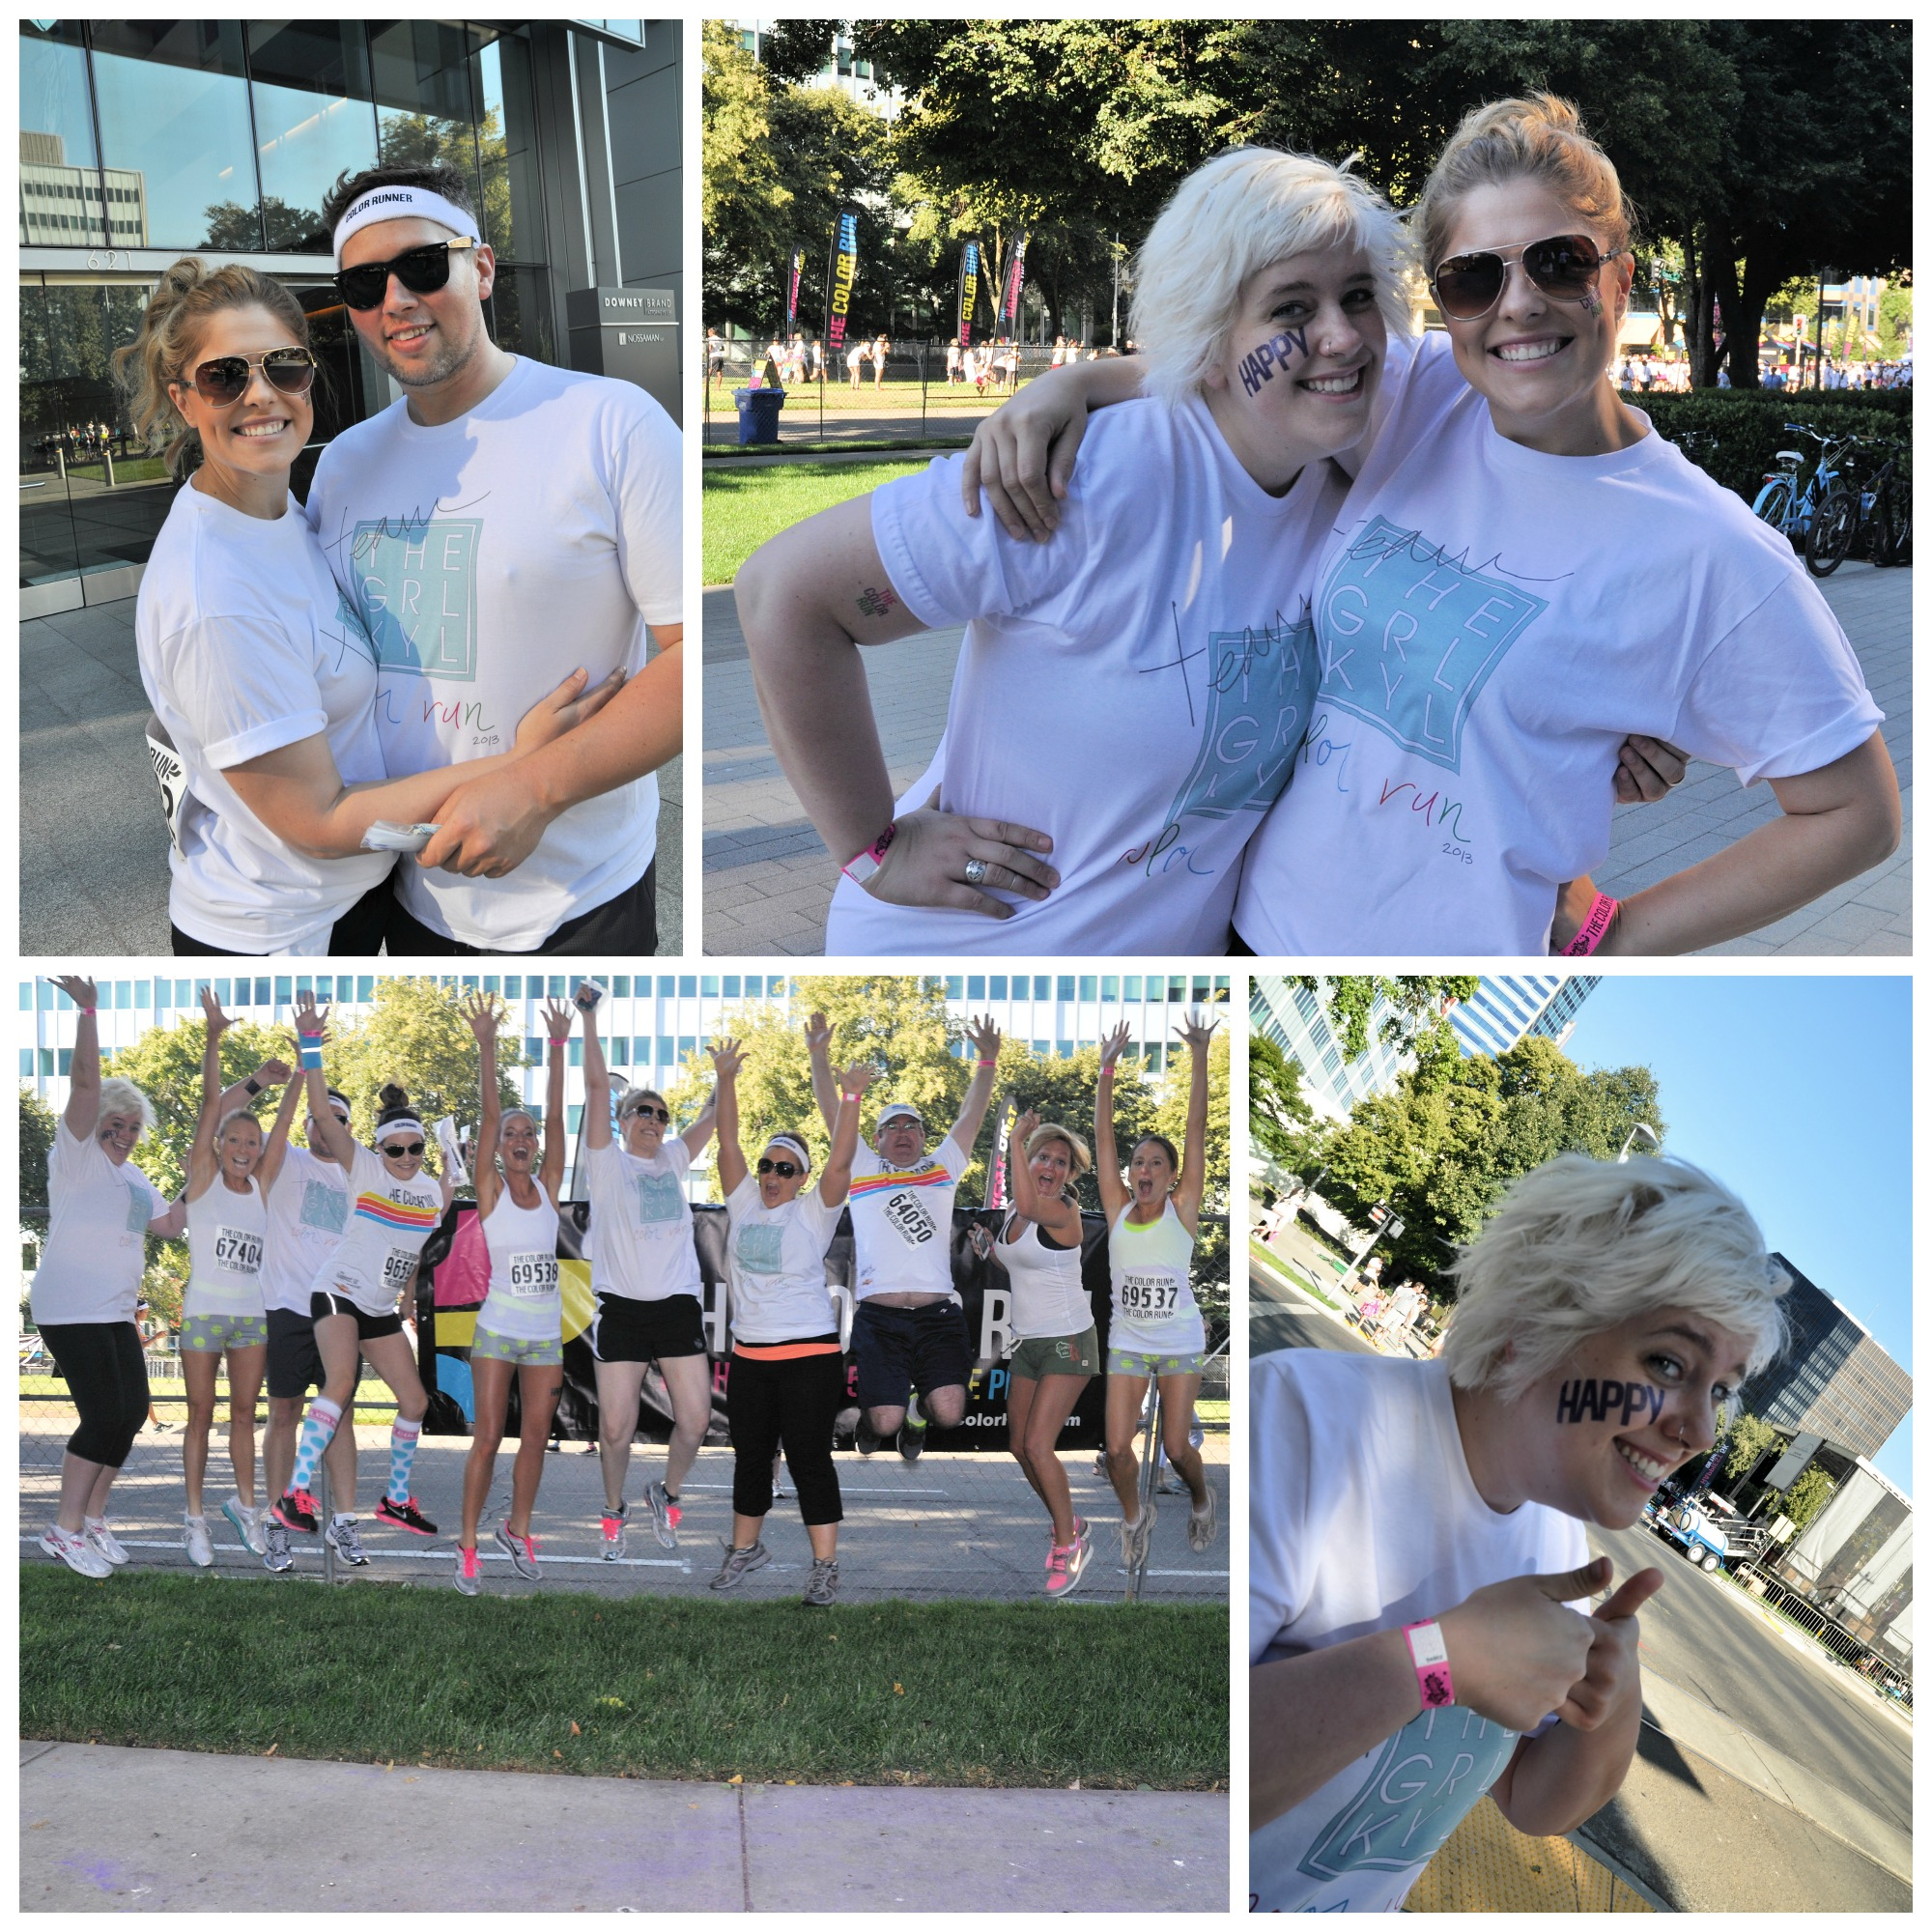 A KIND-A-Awesome 5k #thegirlkyle